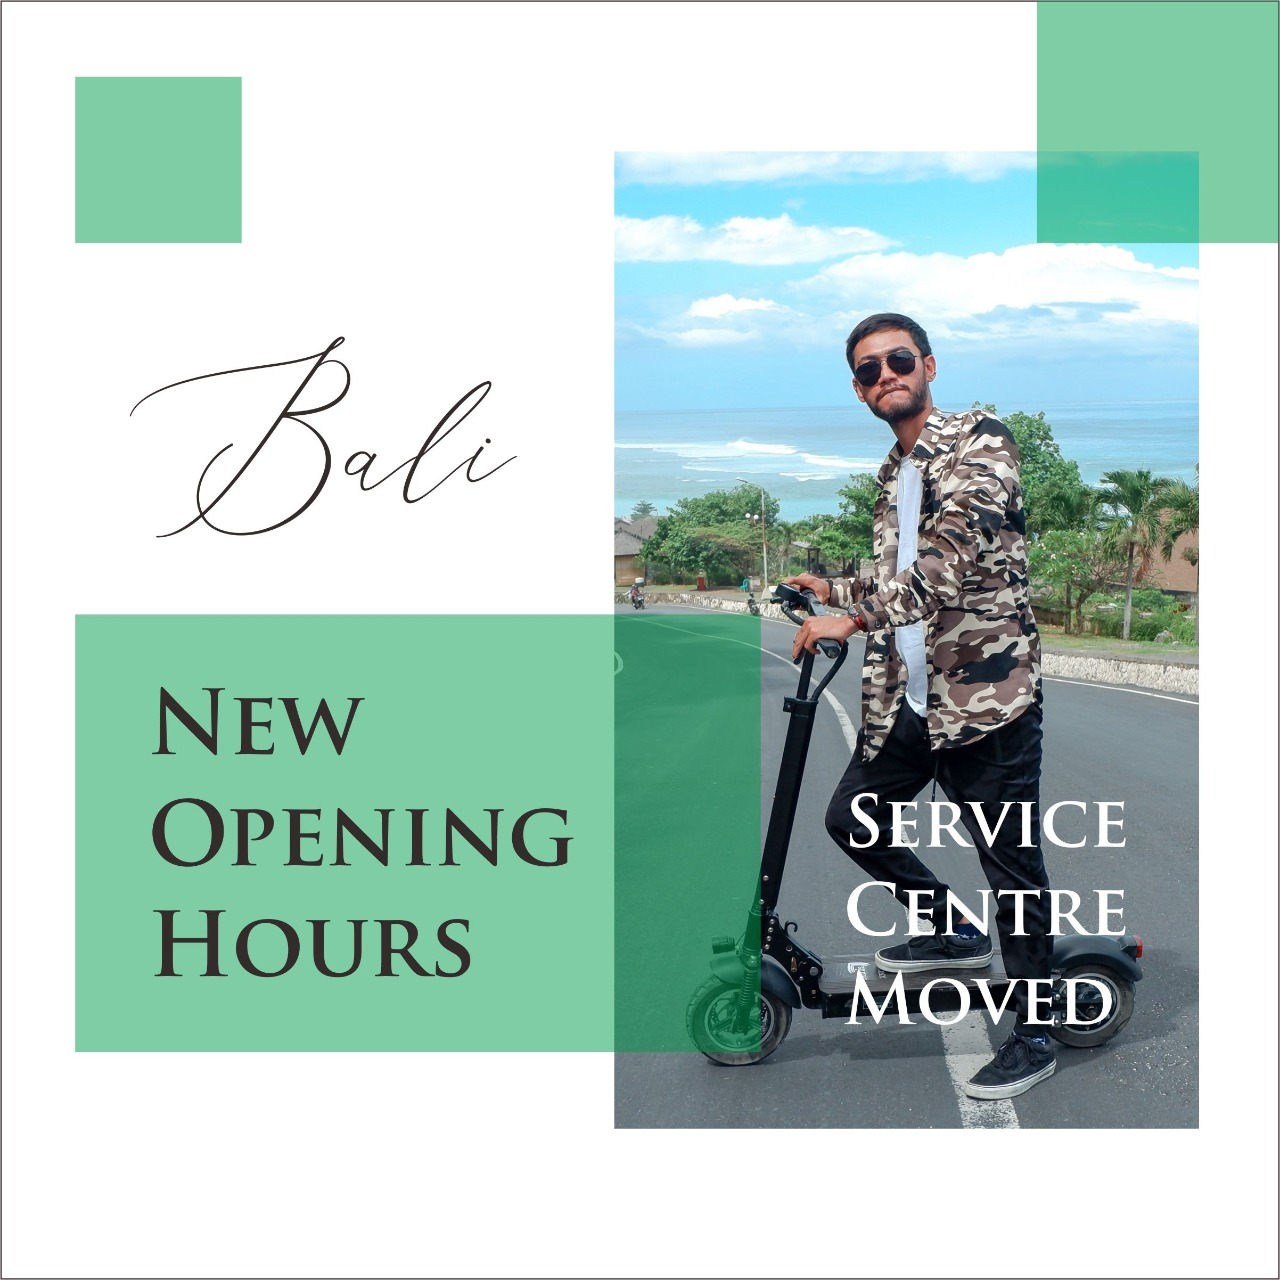 WhatsApp Image 2020 01 22 at 17.13.44 - Bali - New Opening Hours - Service Center Moved